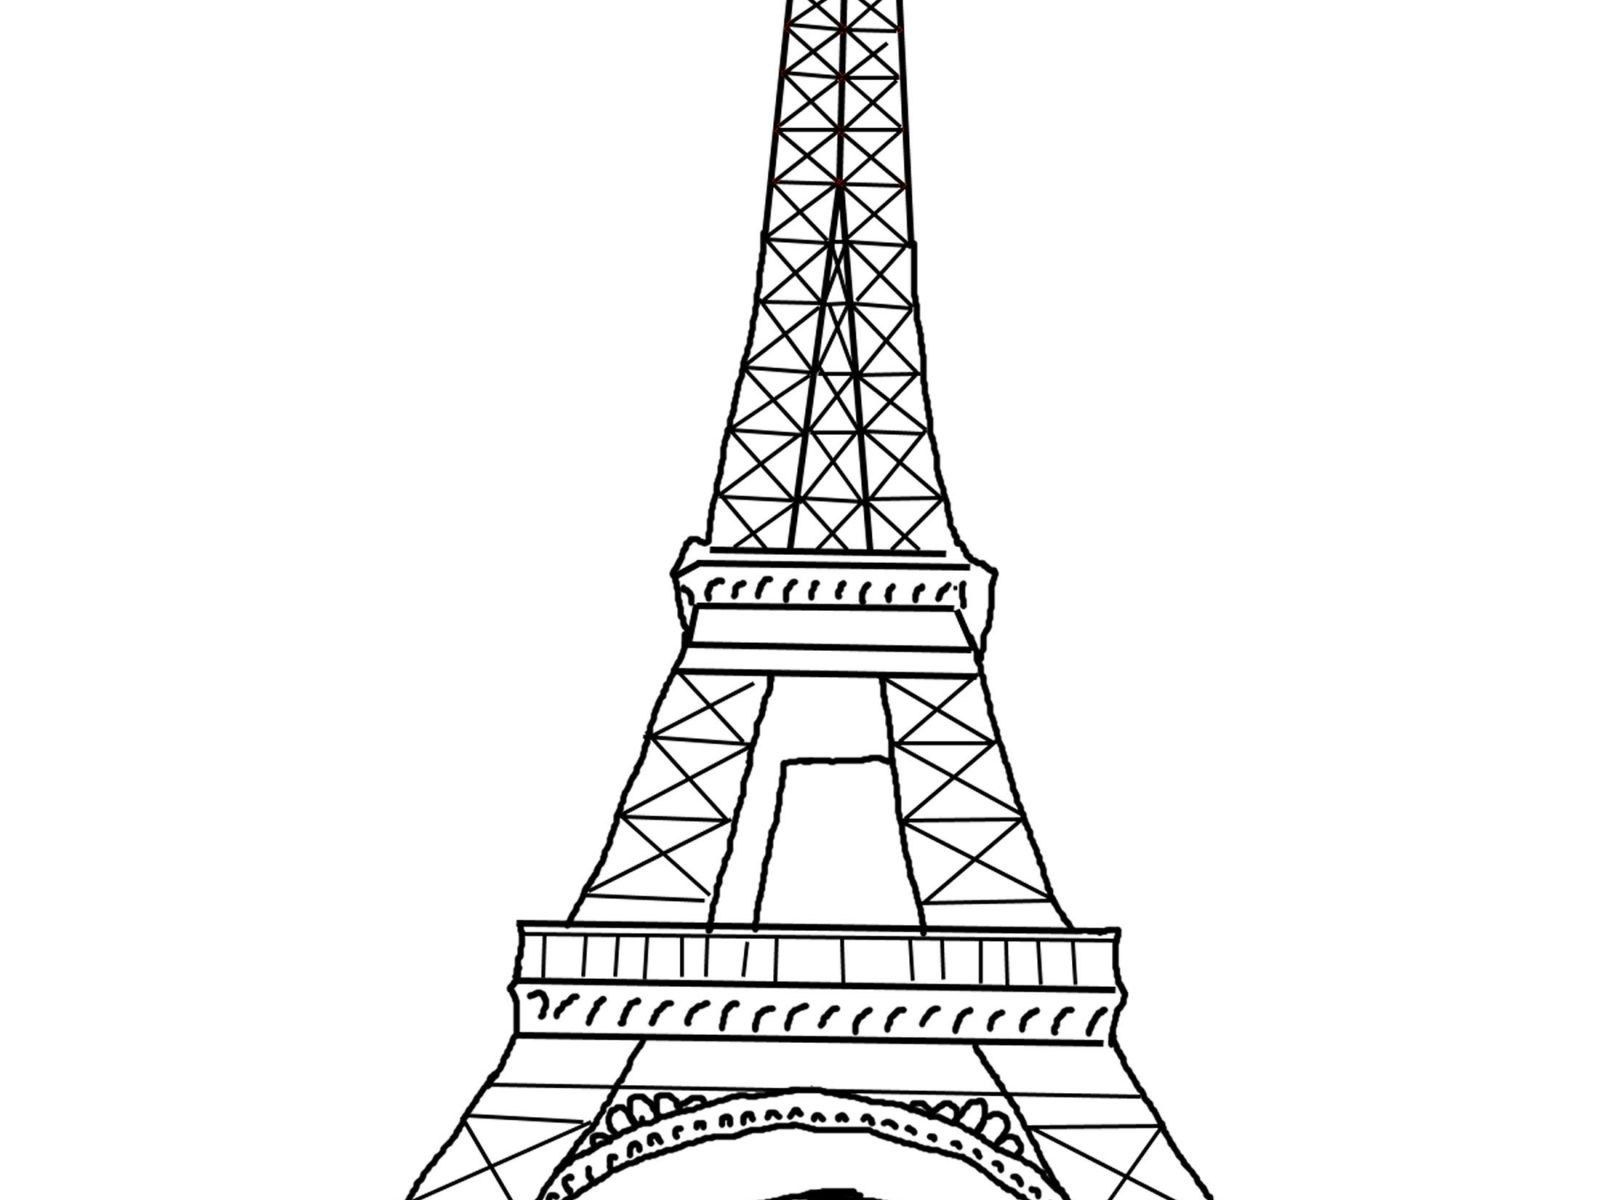 24 Amazing Image Of Eiffel Tower Coloring Page Davemelillo Com Coloring Pages Superhero Coloring Pages Eiffel Tower